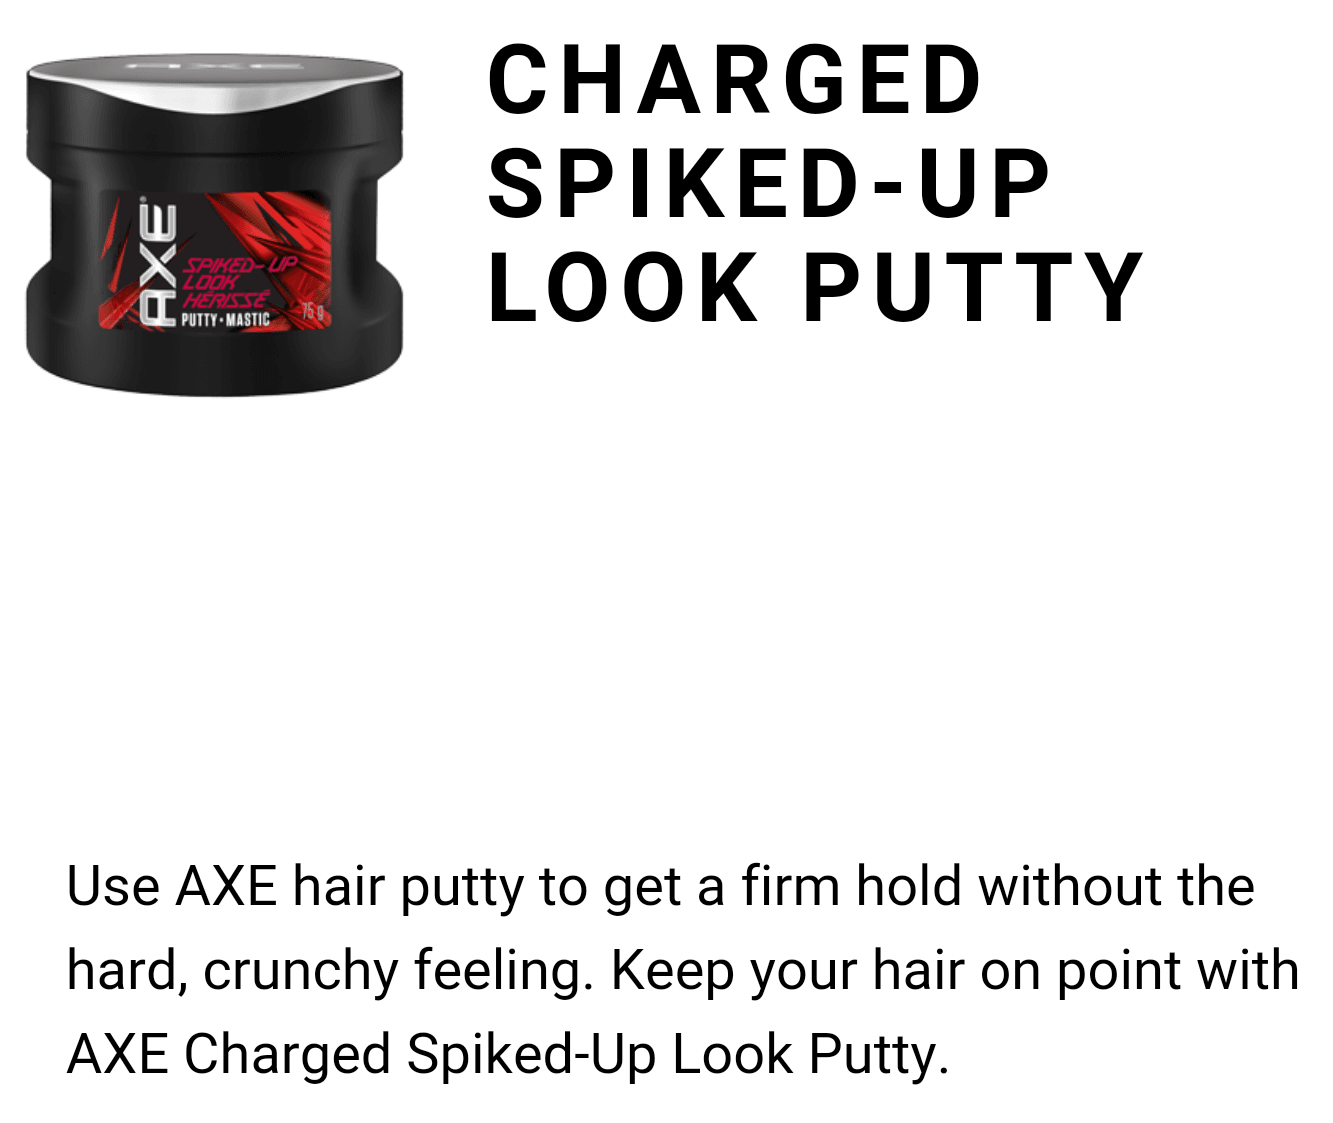 AXEGOTSTYLE-Charged-Spiked-Up-Look-Putty